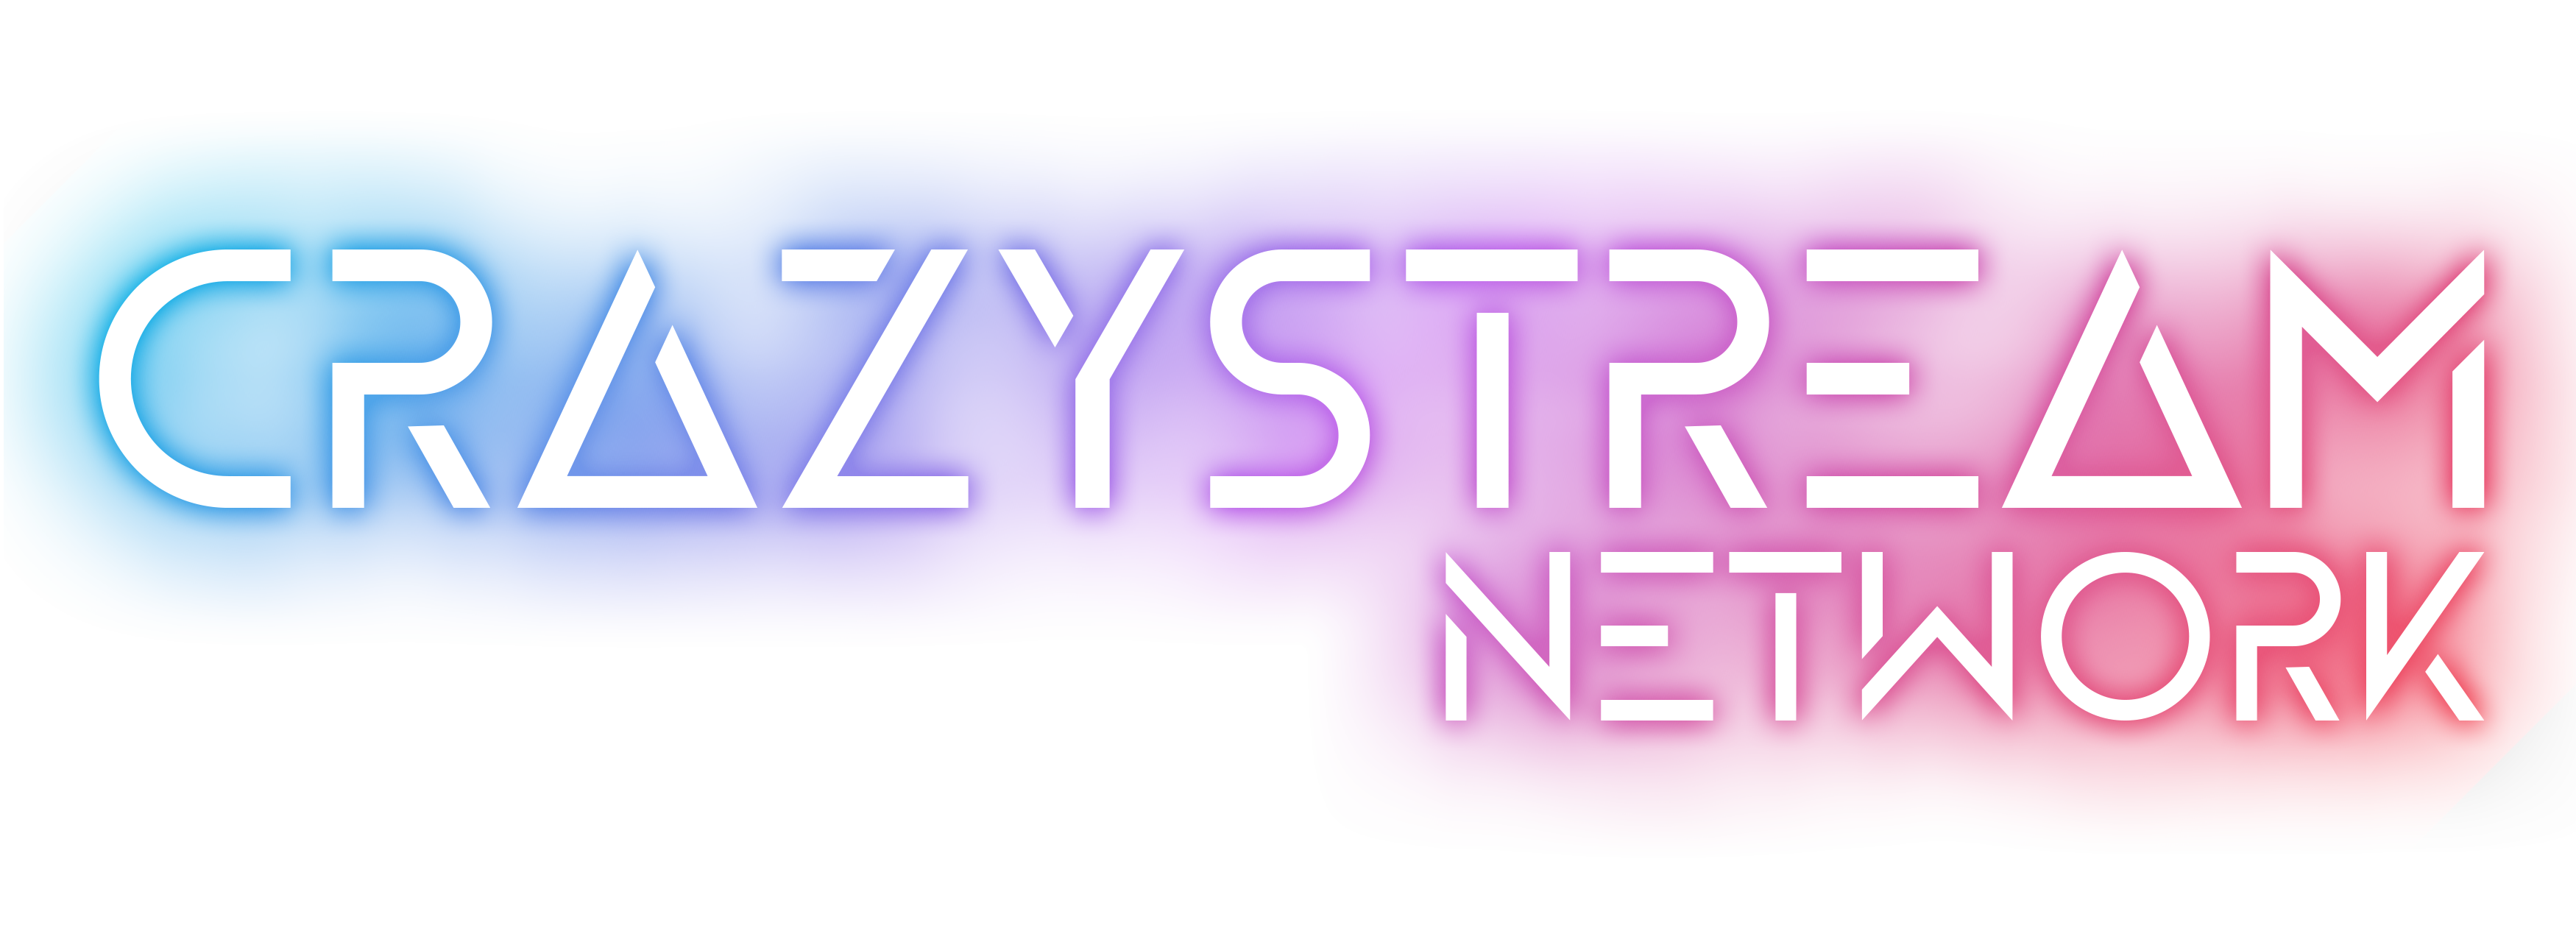 CrazyStream.tv